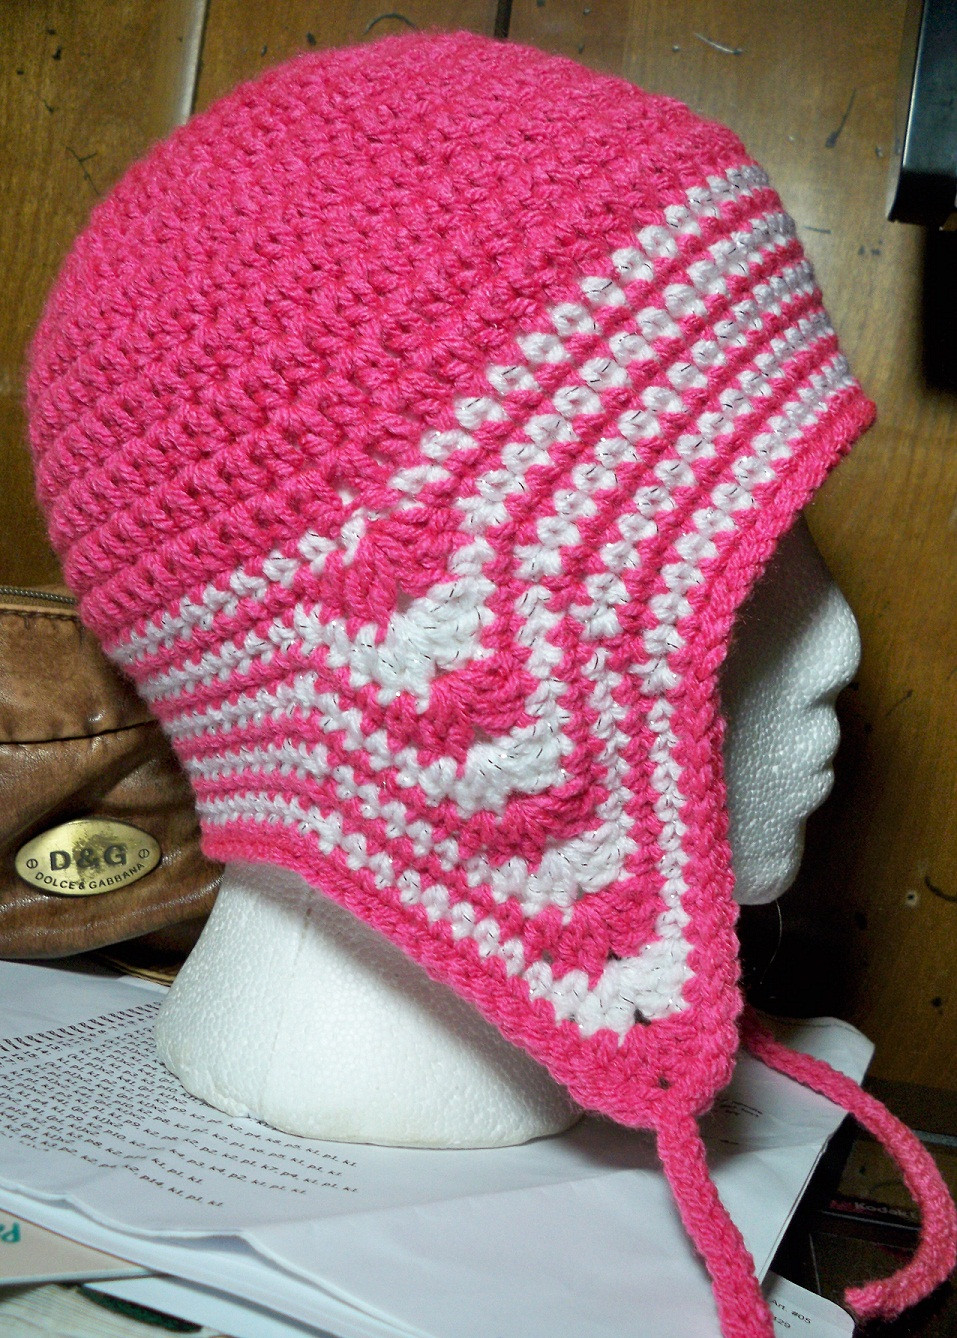 New Jr Crochet Designs 2 New Designs Just In Time for Christmas Earflap Hat Pattern Of Wonderful 47 Ideas Earflap Hat Pattern